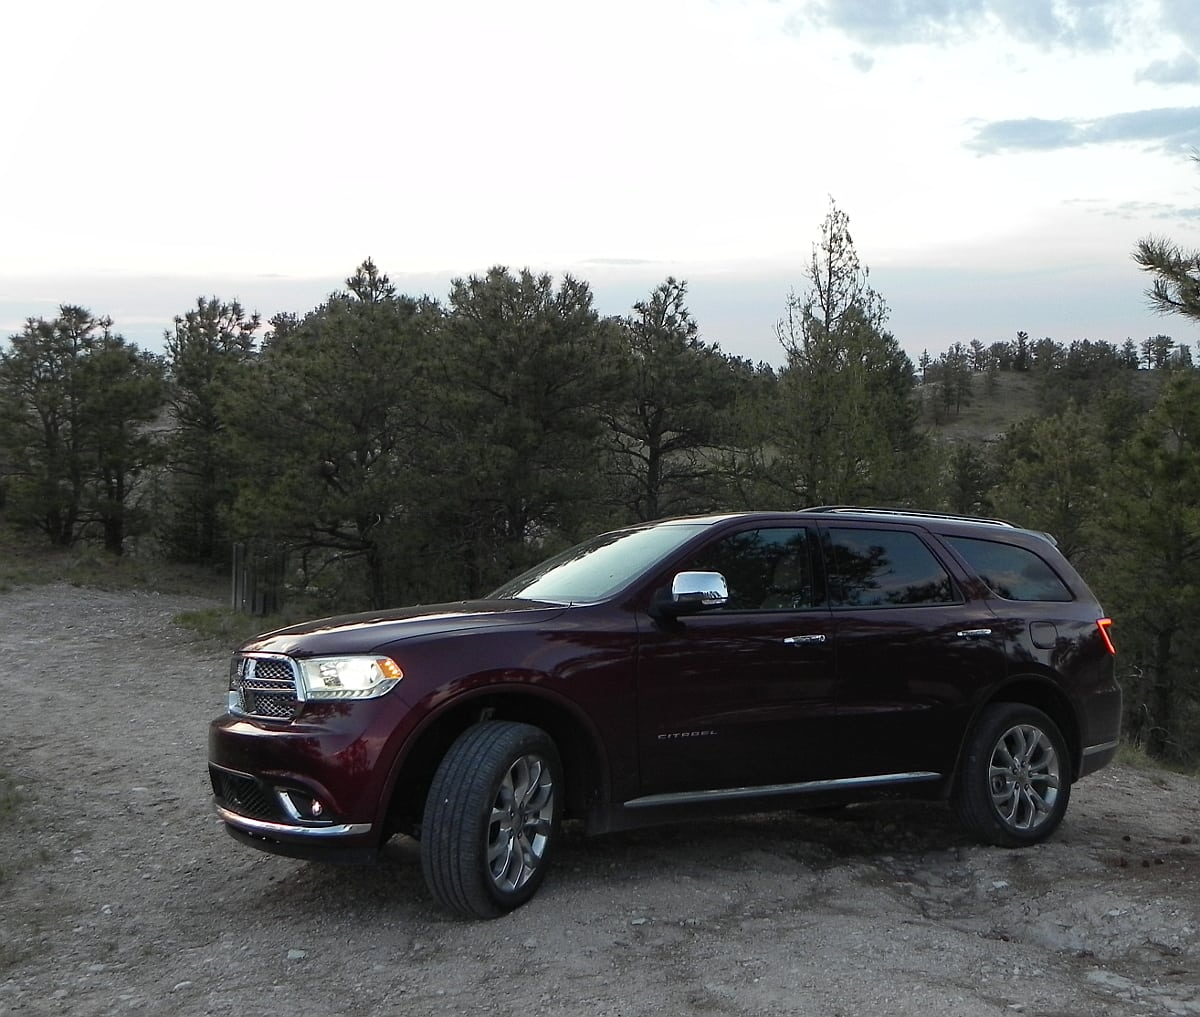 Review: Family Friendly 2017 Dodge Durango Is Unique In Its Class